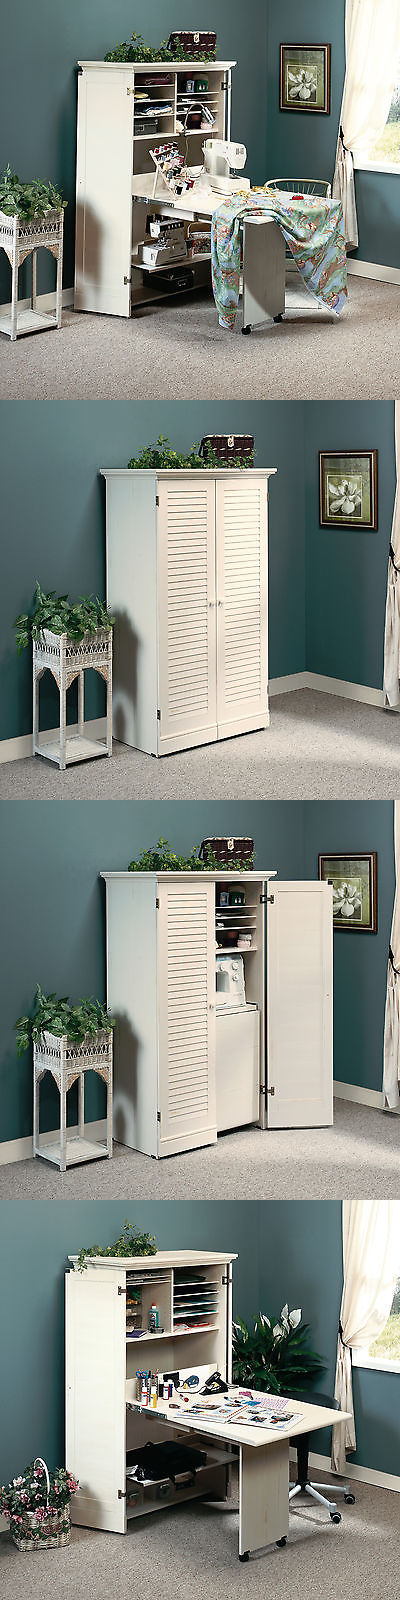 Armoires and Wardrobes 103430: New Sauder Harbor View ...